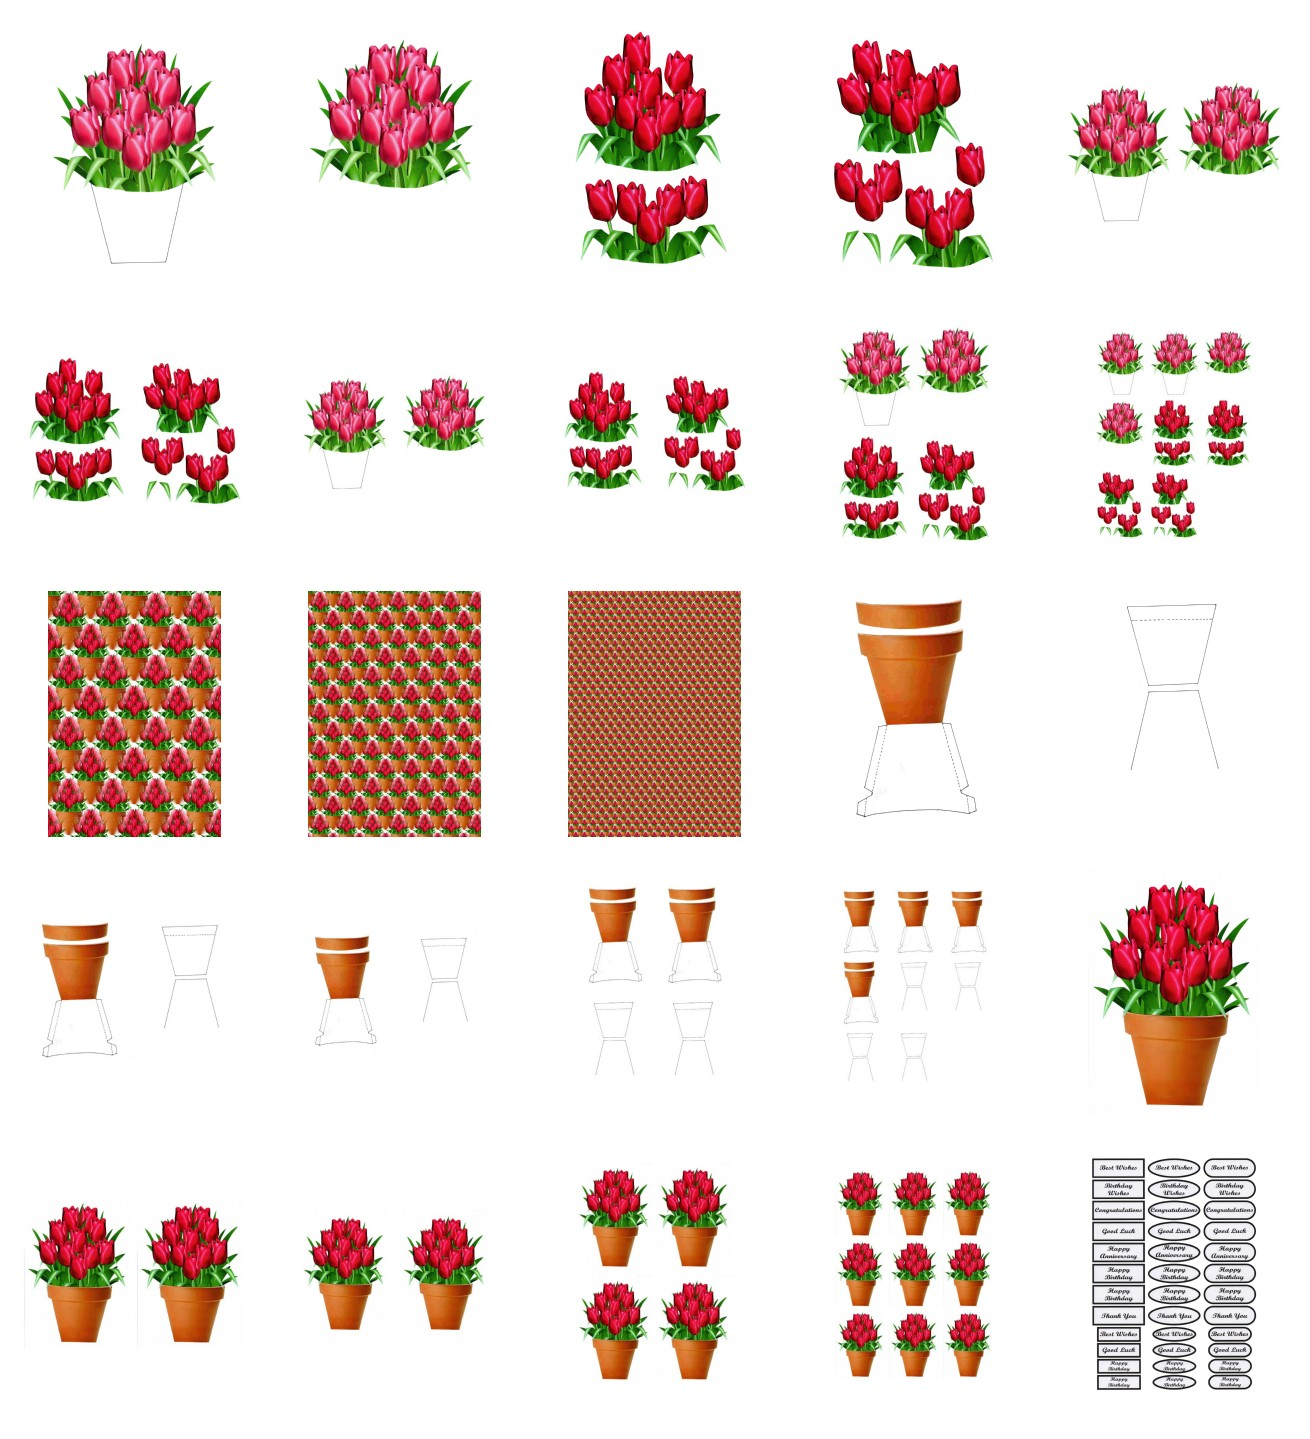 Spring Tulip Flowers Set 01 - 25 Pages to Download